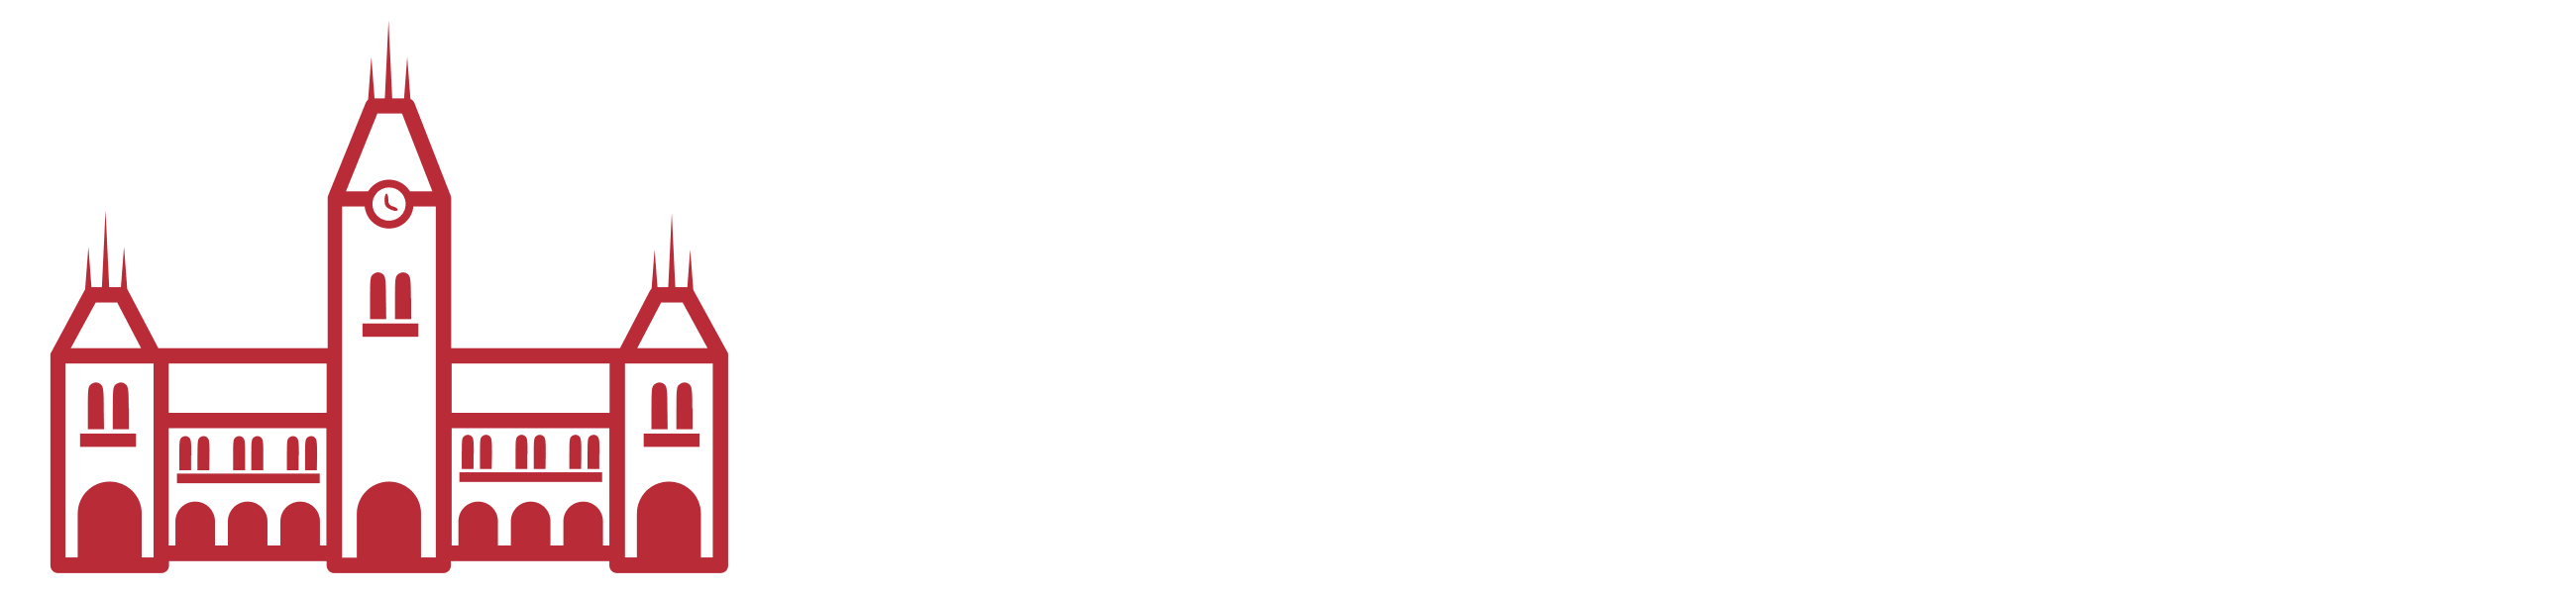 Chennai Property Developers logo